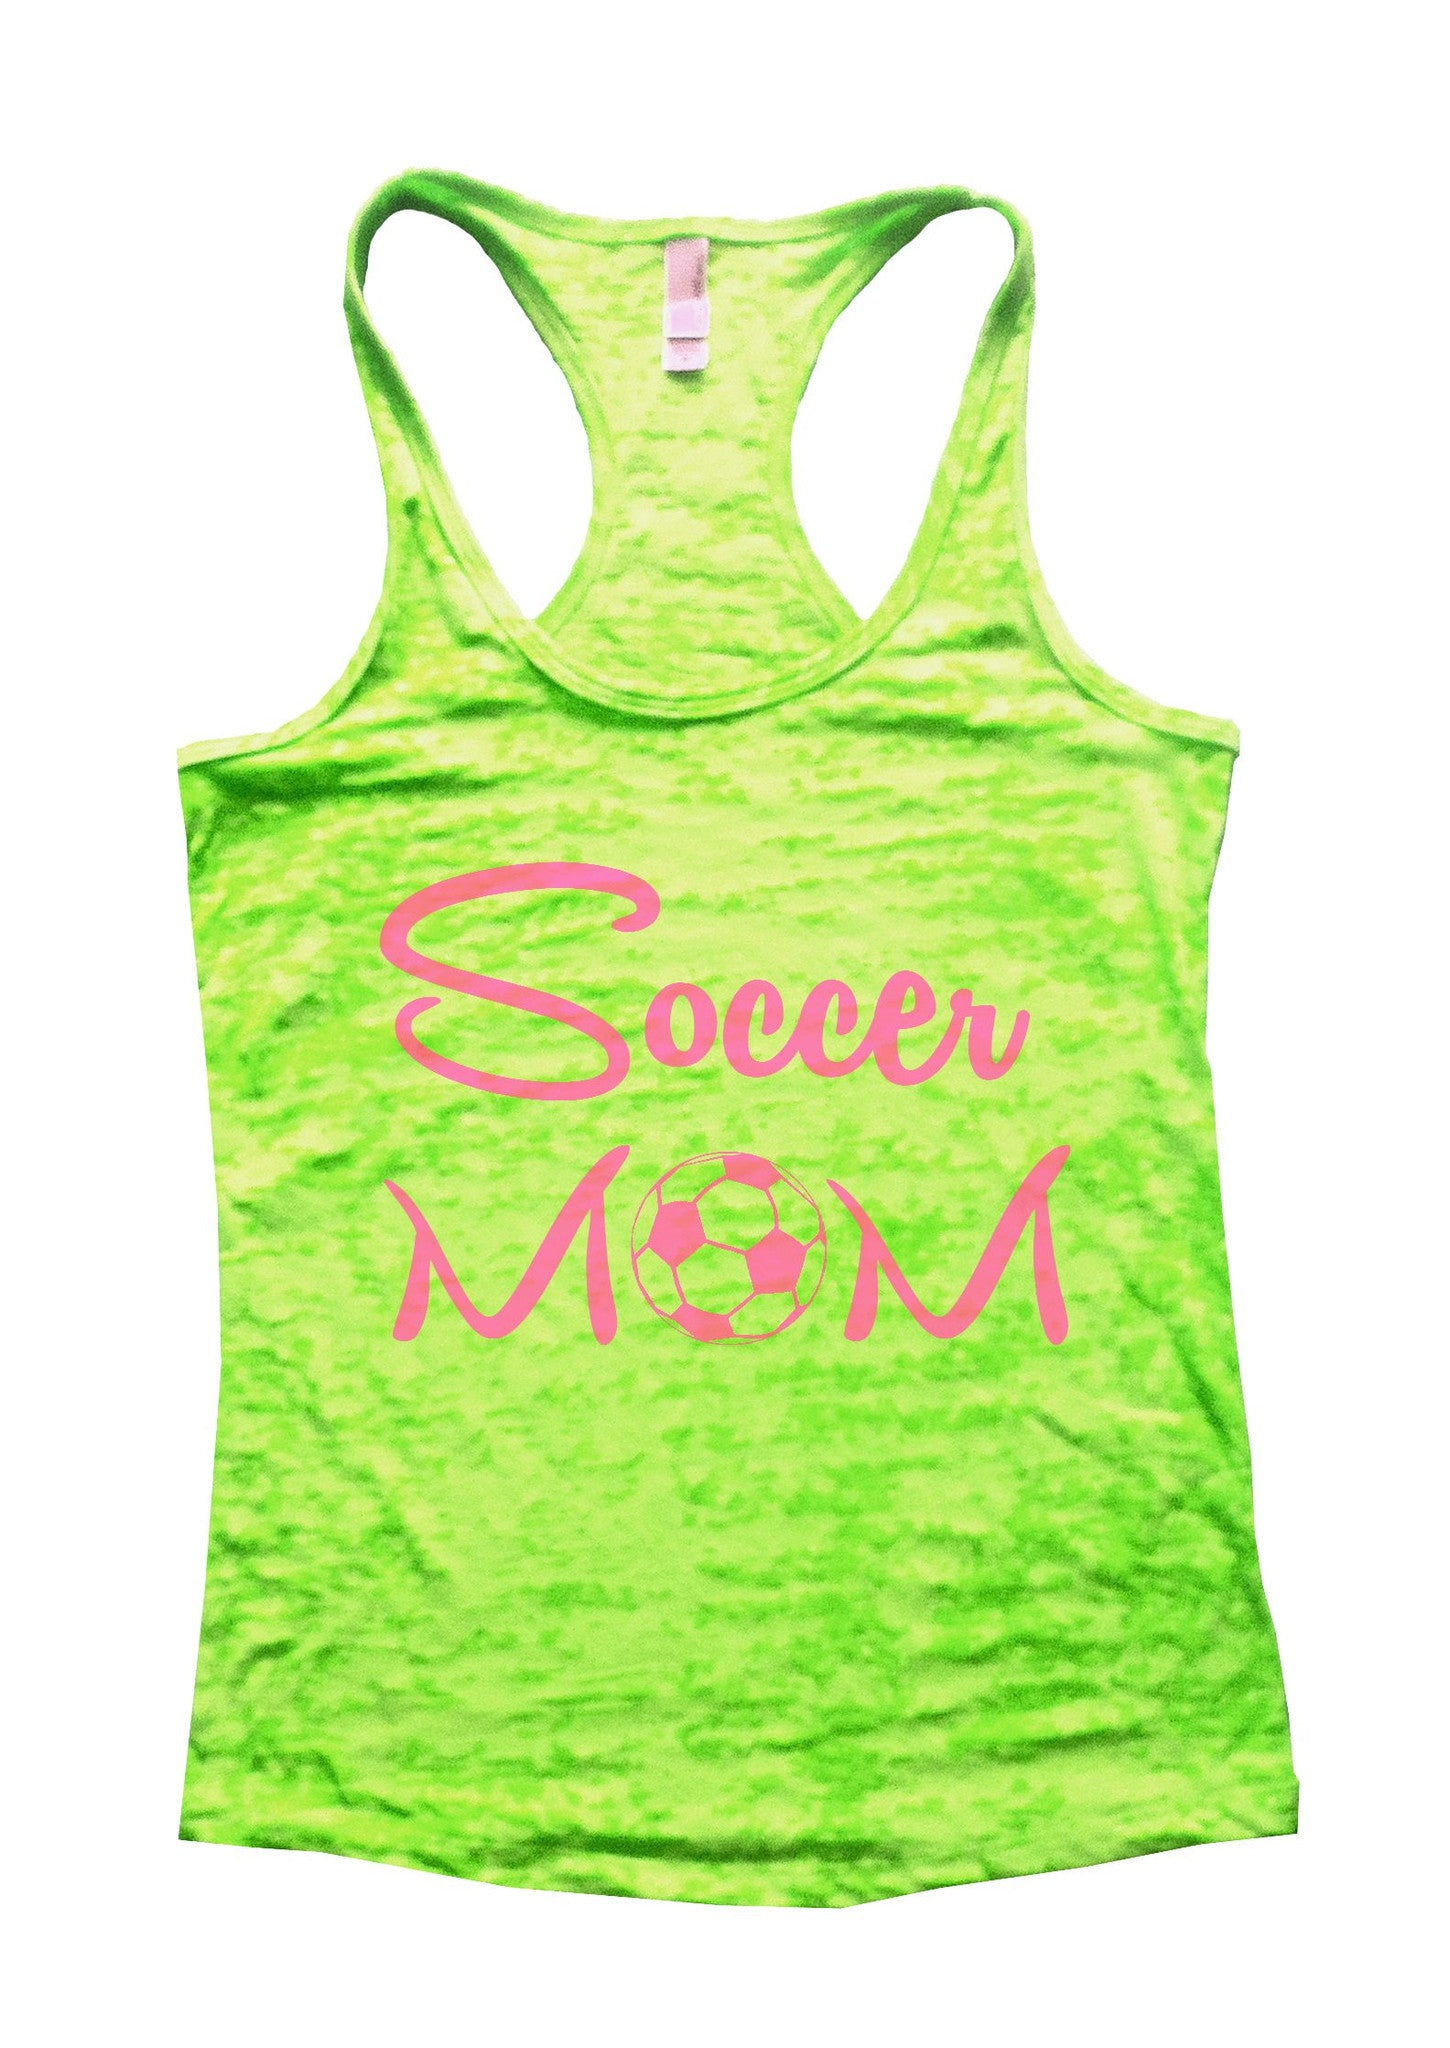 Soccer Mom Burnout Tank Top By BurnoutTankTops.com - 658 - Funny Shirts Tank Tops Burnouts and Triblends  - 1